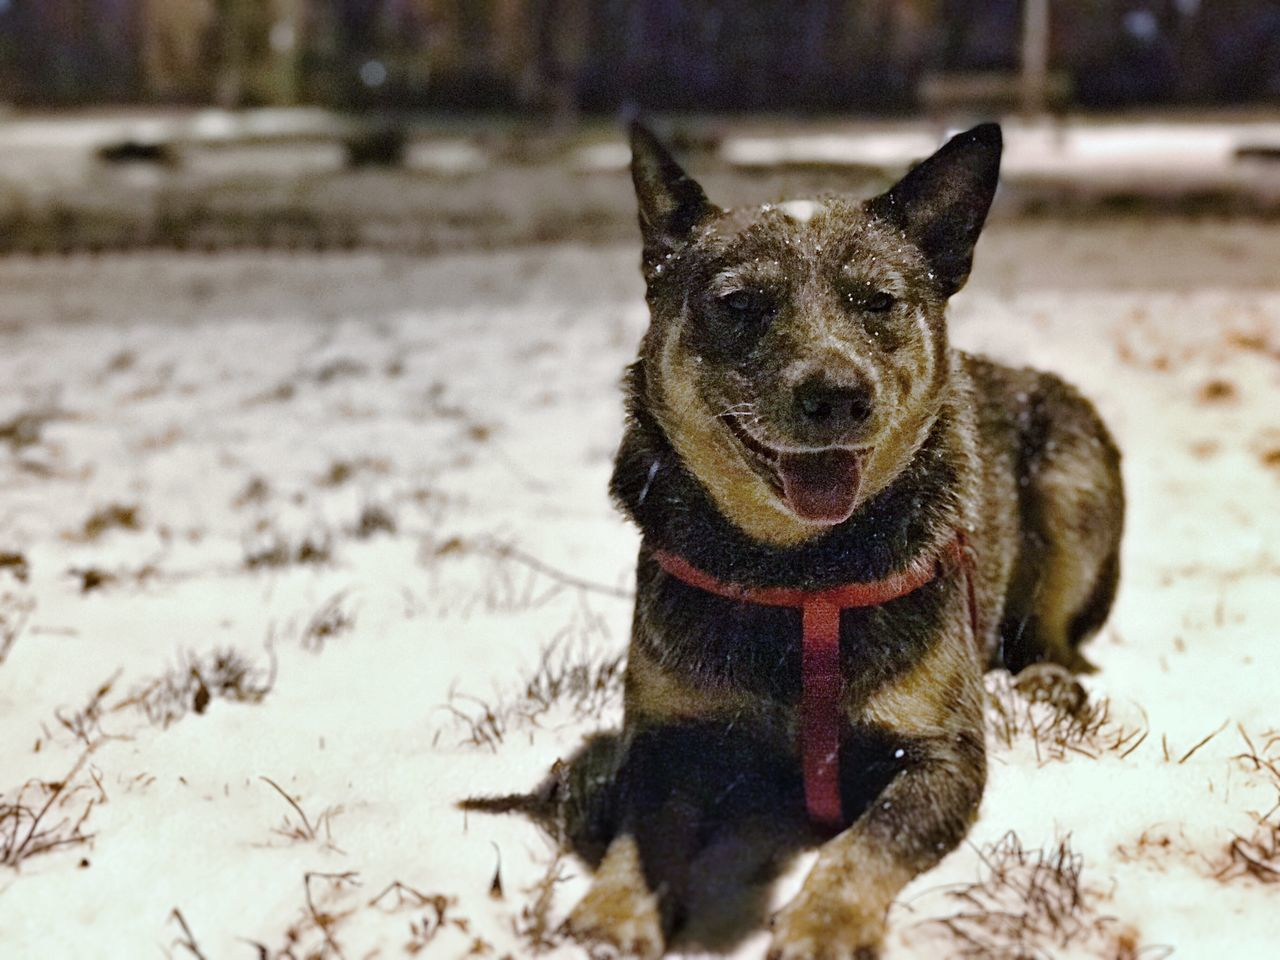 Australian Cattle Dog Dino's first time in the snow Animal Themes One Animal Pets Dog Mammal Domestic Animals Looking At Camera Portrait Focus On Foreground No People Close-up Outdoors Snow Blue Dog ACD  Australian Cattle Dog Blue Heeler Cattle Dog Smile Pant